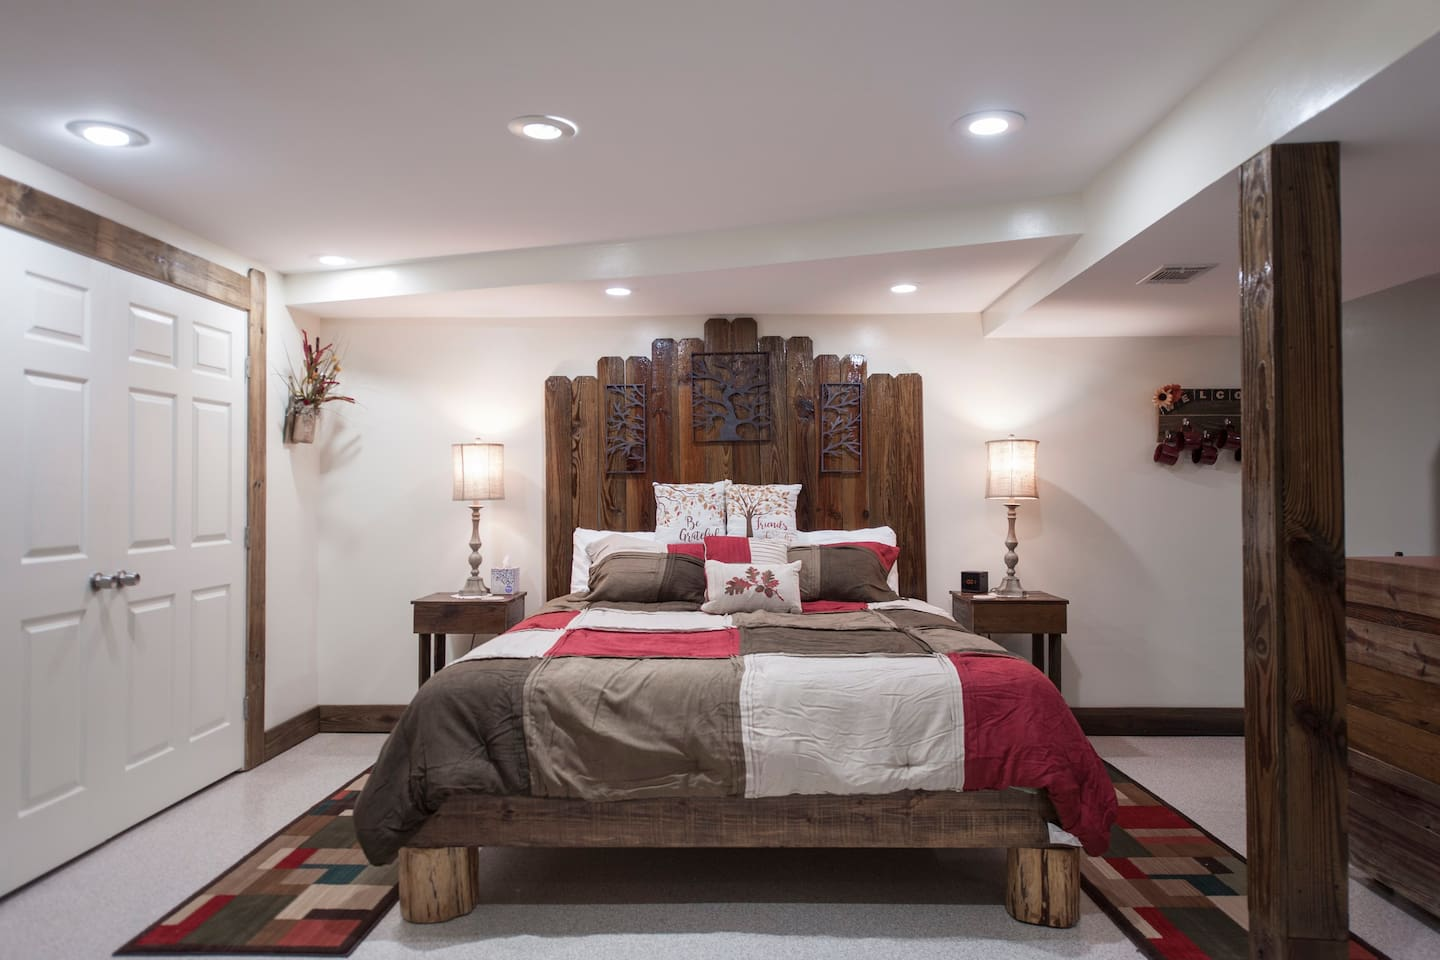 King size bed with cedar posts. The headboard, trim and most of the furniture is made from refurbished Fence wood.